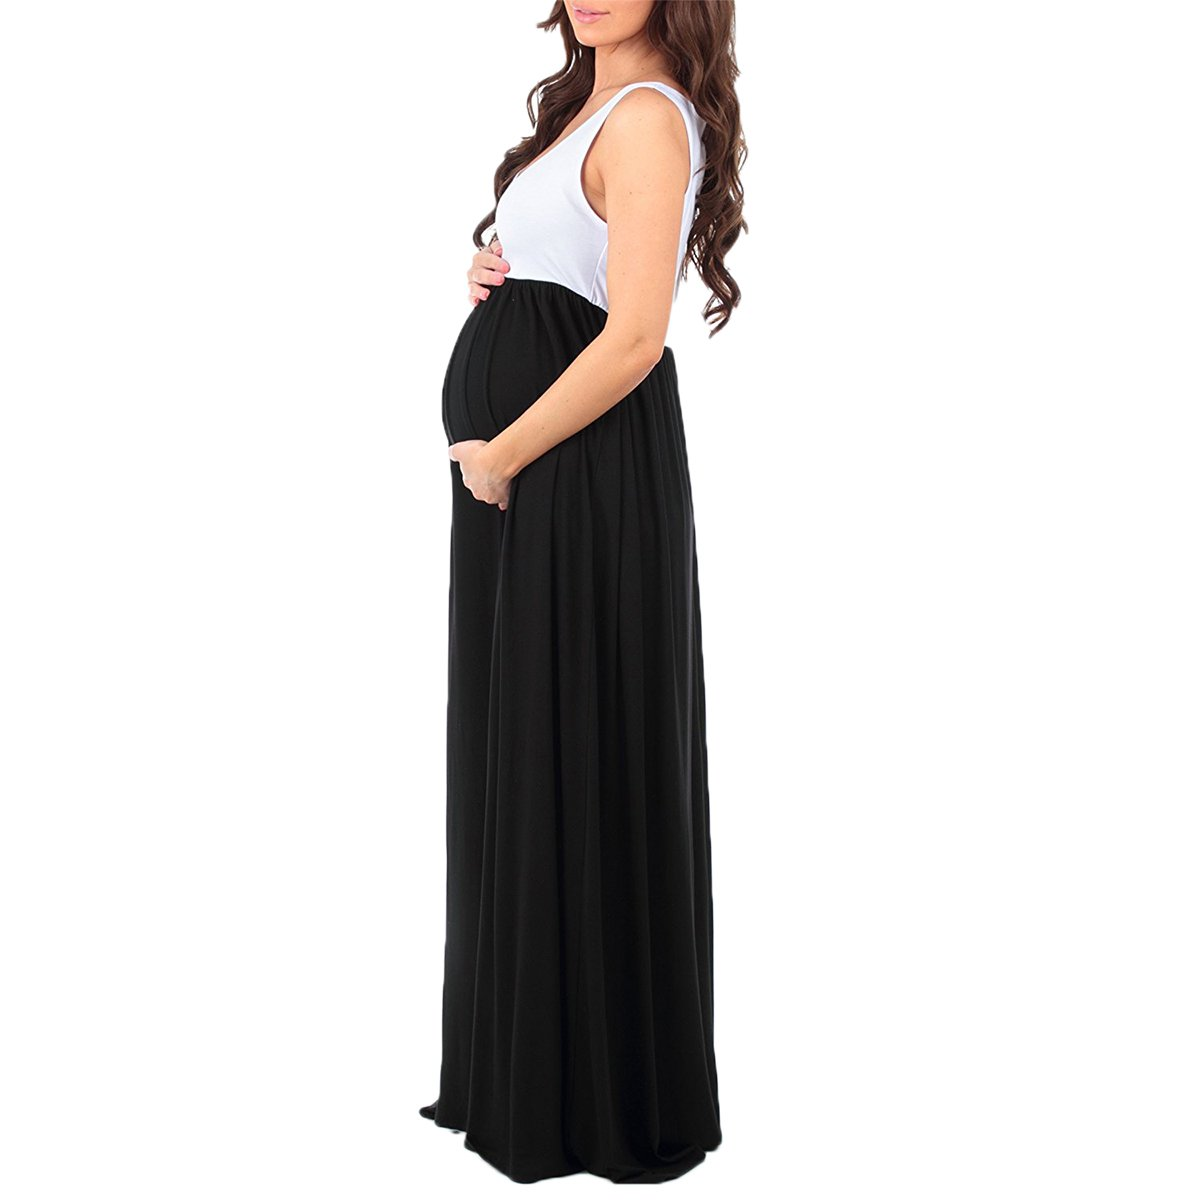 2115077022353 Women Maternity Color Block Boho Ruched Tank Dress Long Floral Pregnant  Mama Casual Maxi Gown for Baby Shower Photography at Amazon Women's Clothing  store: